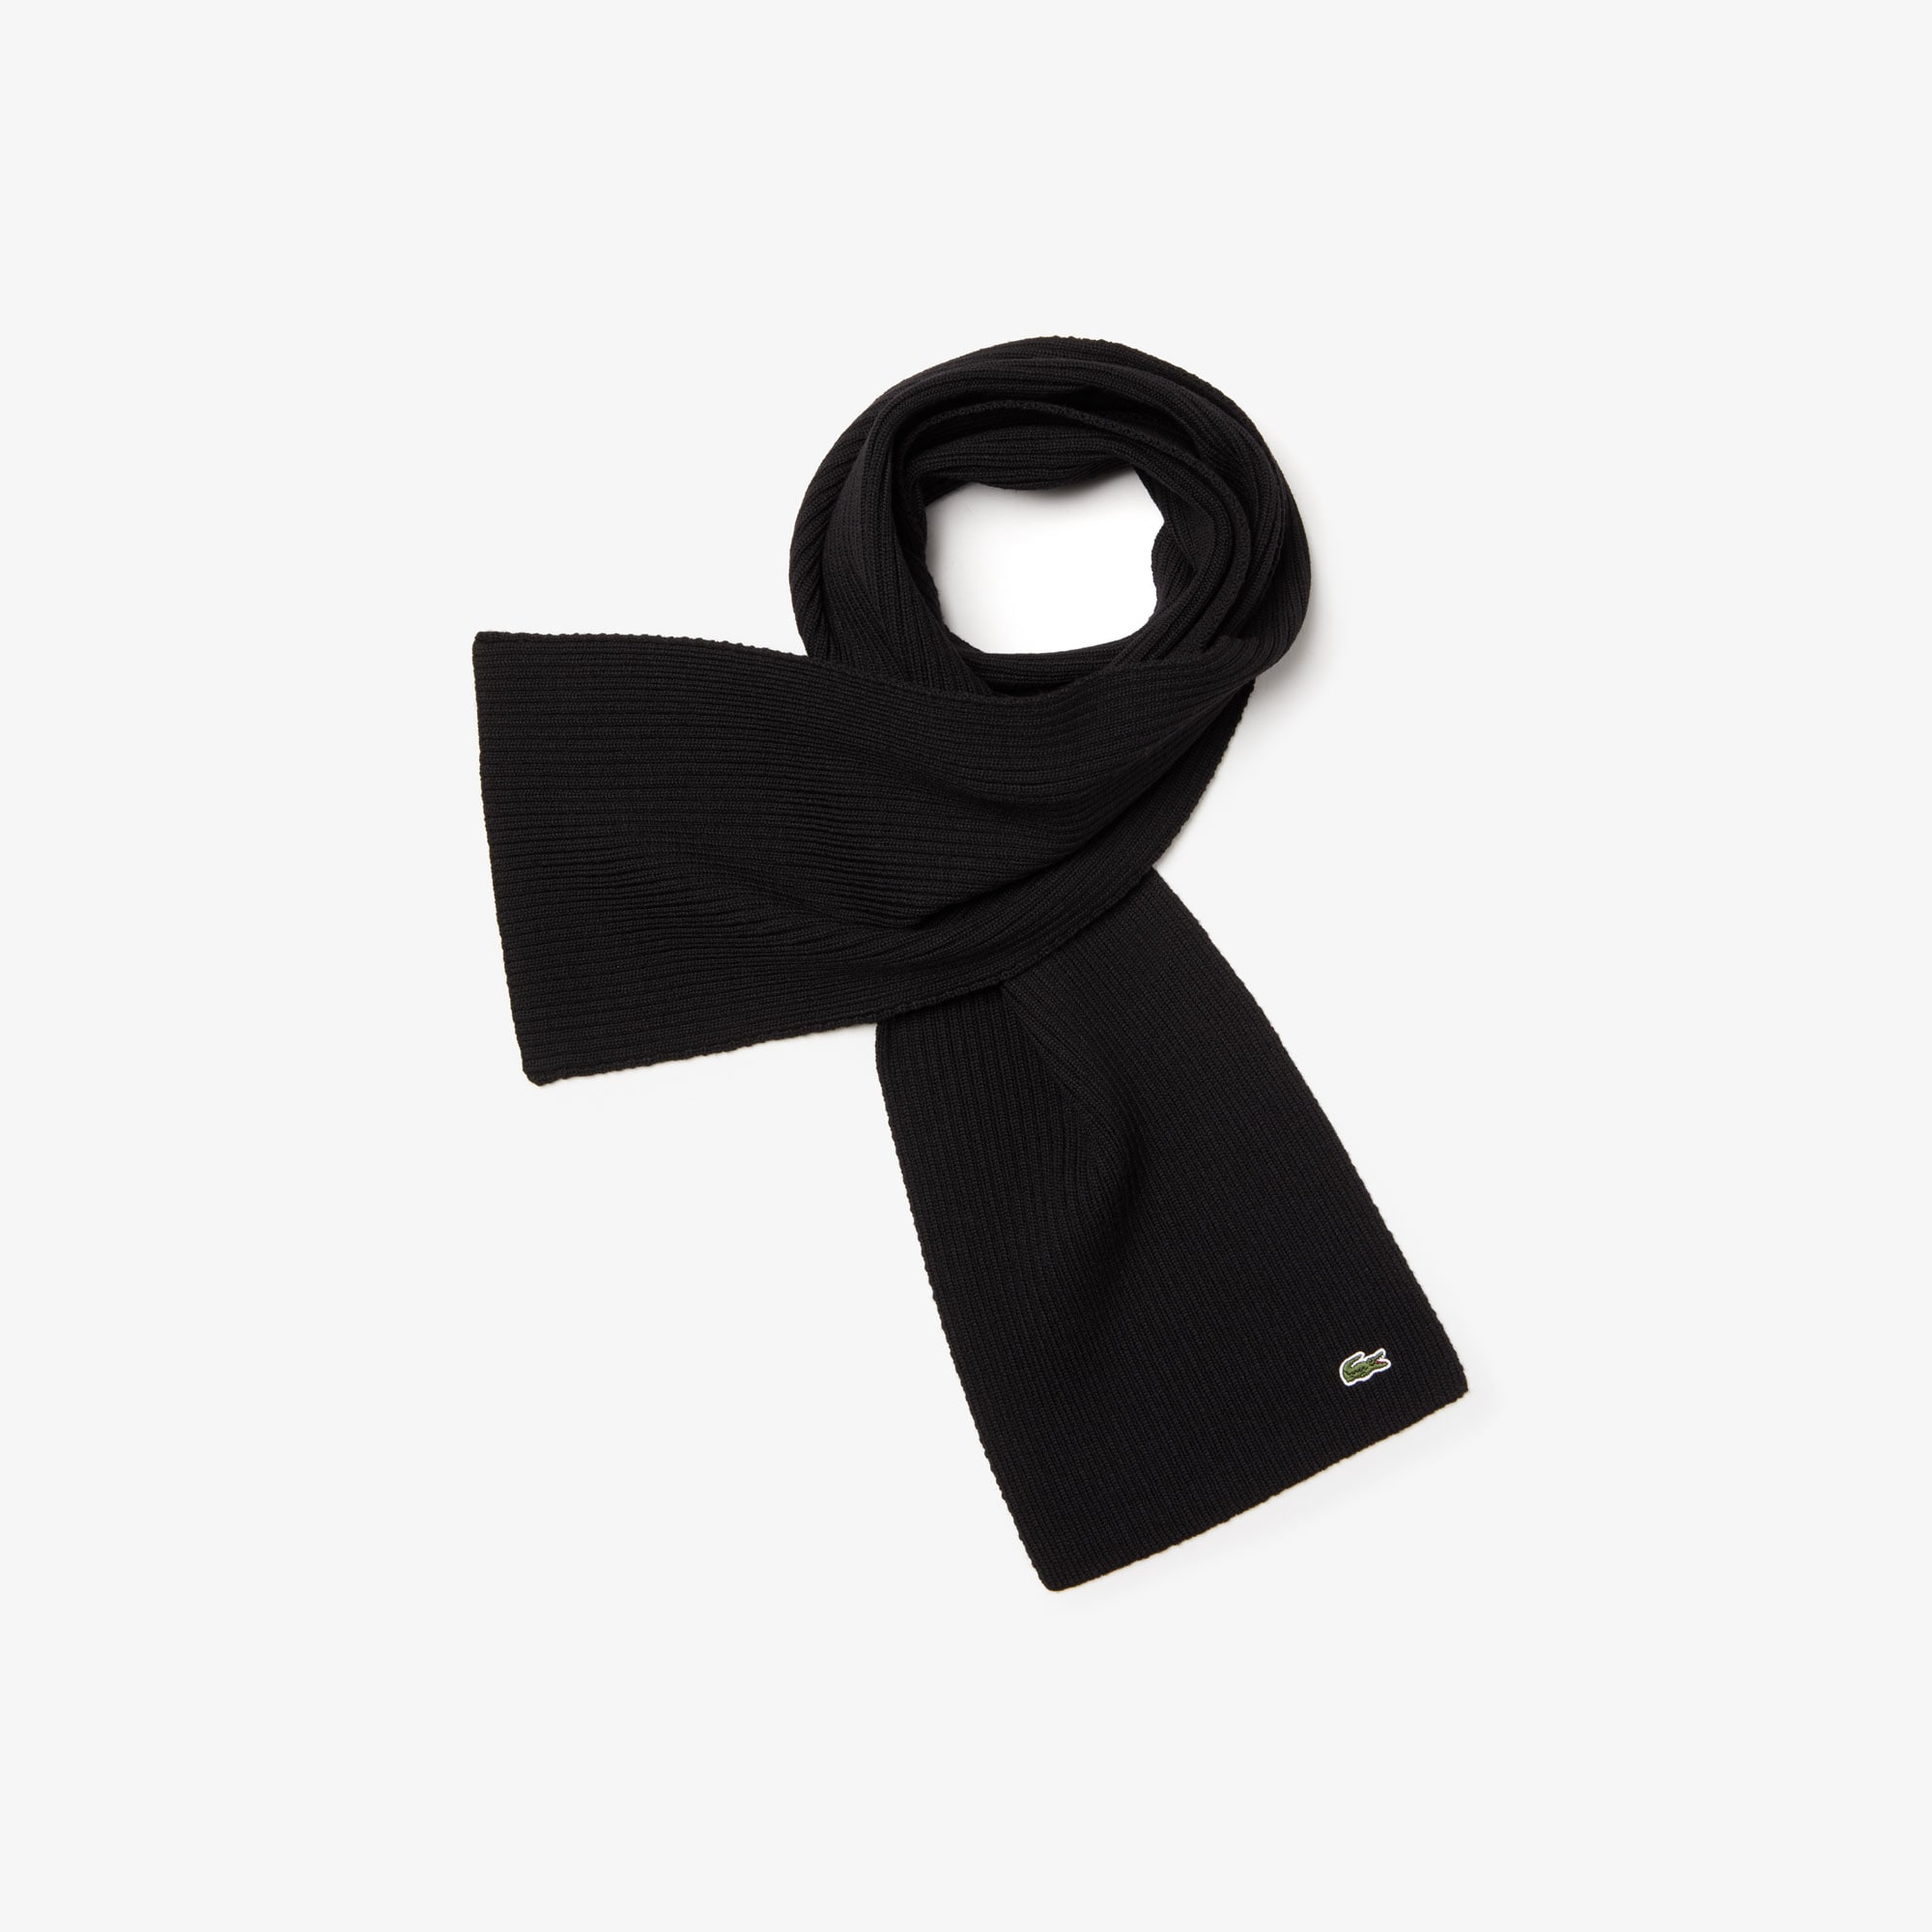 cdaab2e0ac3f Scarves   Stoles   Women s Accessories   LACOSTE